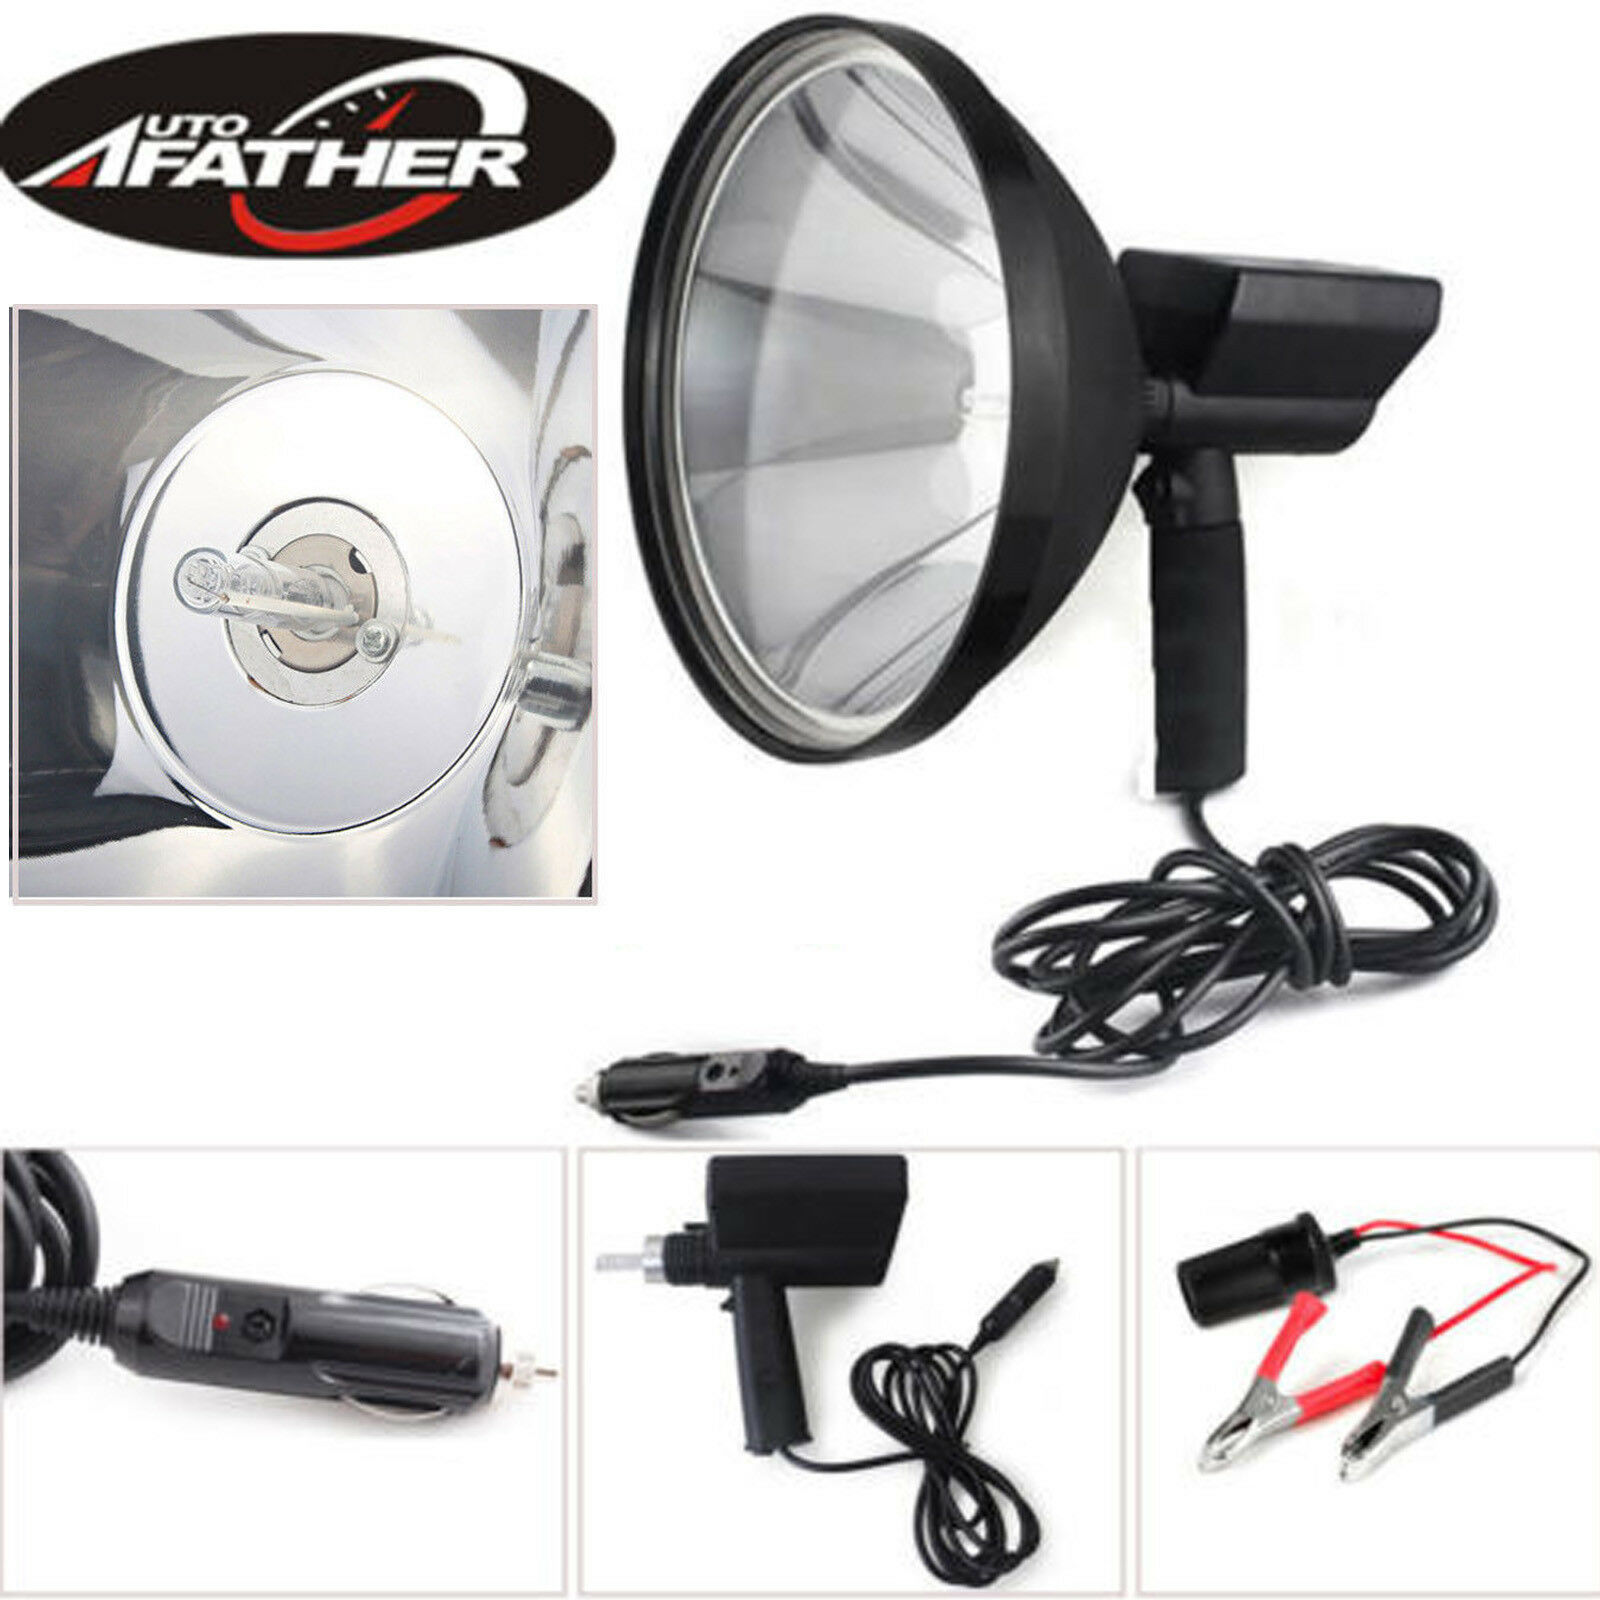 Spot Light Handheld Xenon   LED Spotlight Camping Hunting Fishing Off Road 1980W